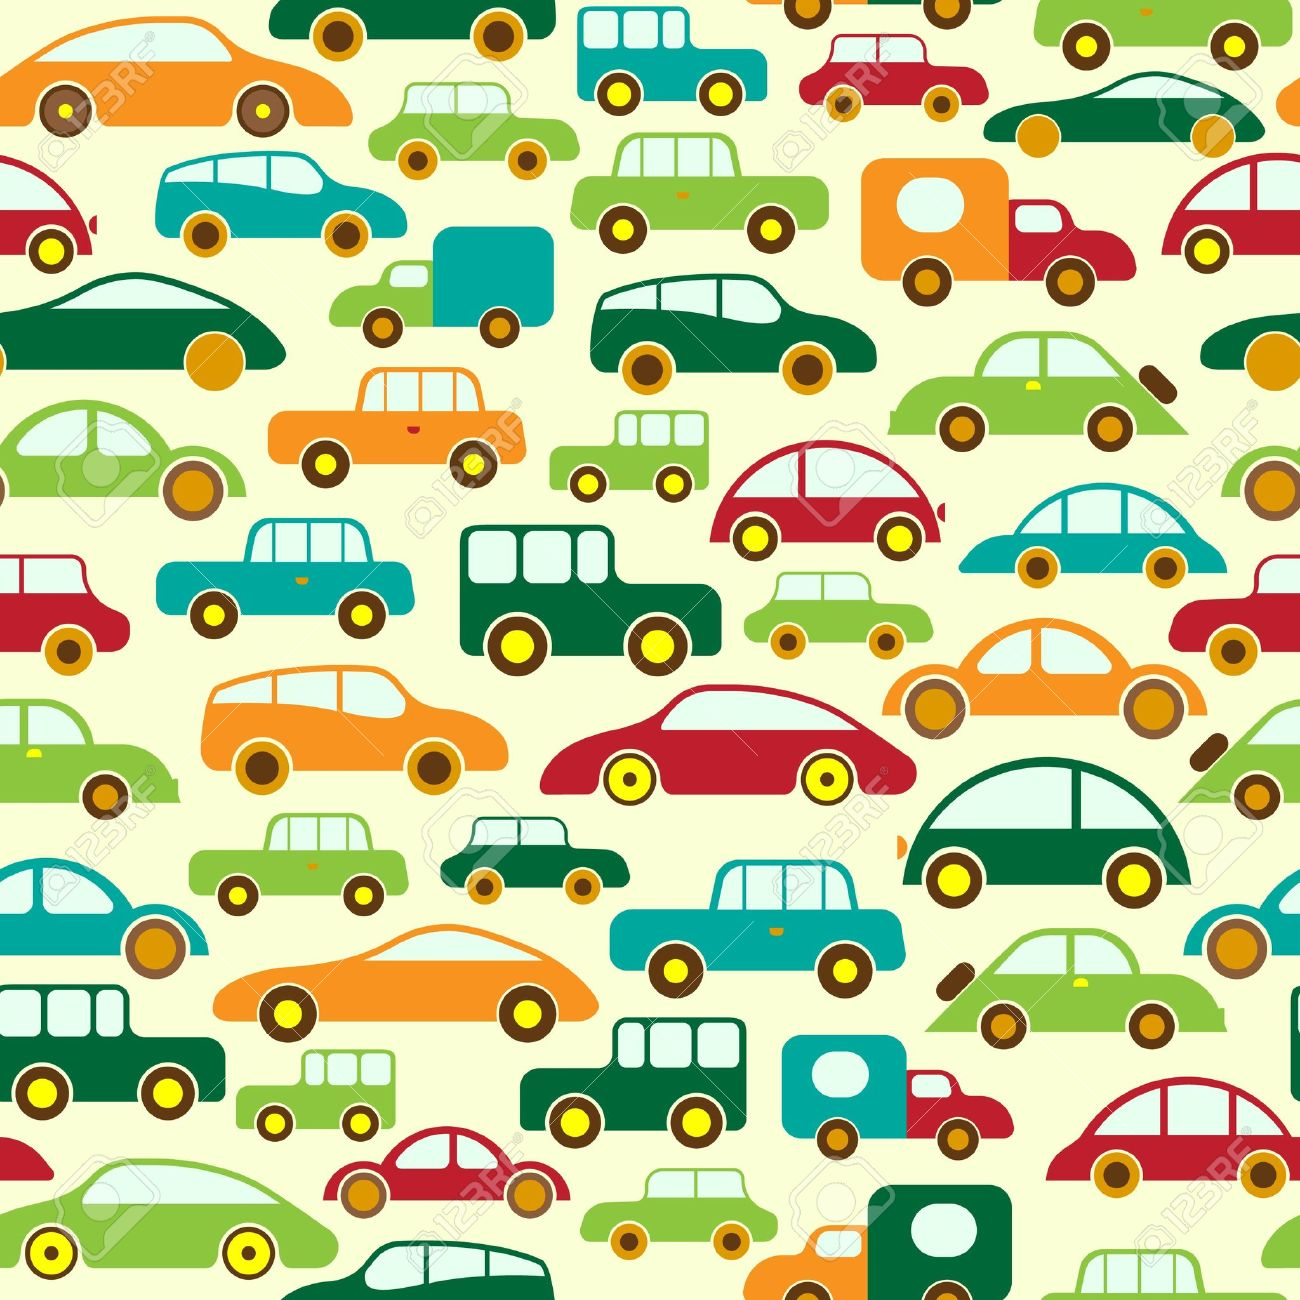 Car Seamless Wallpaper or Background Stock Vector - 7101754